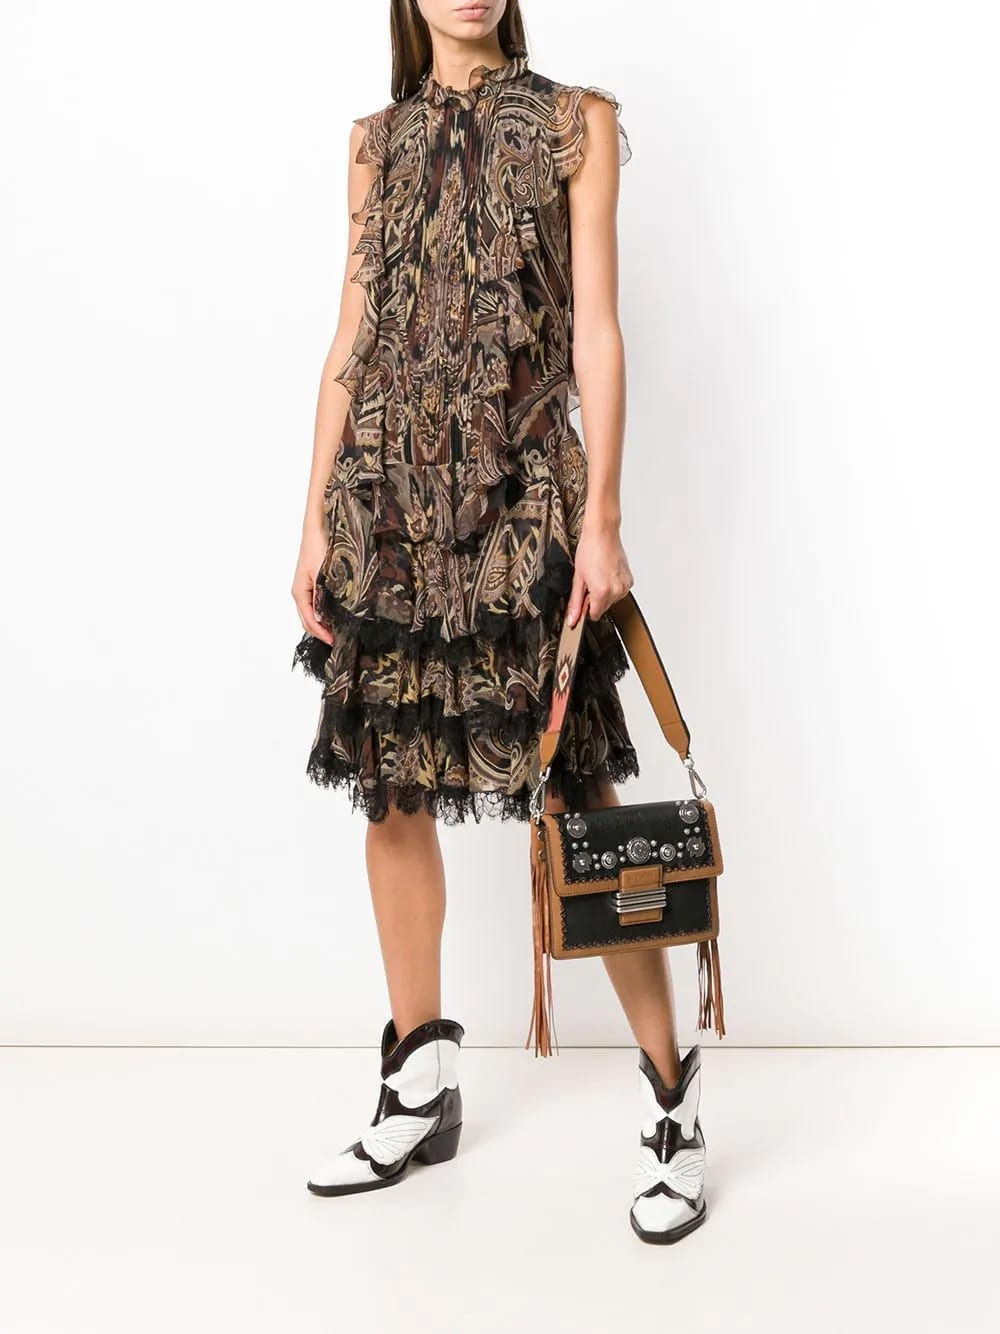 ETRO-Alameda-Brown-Dress